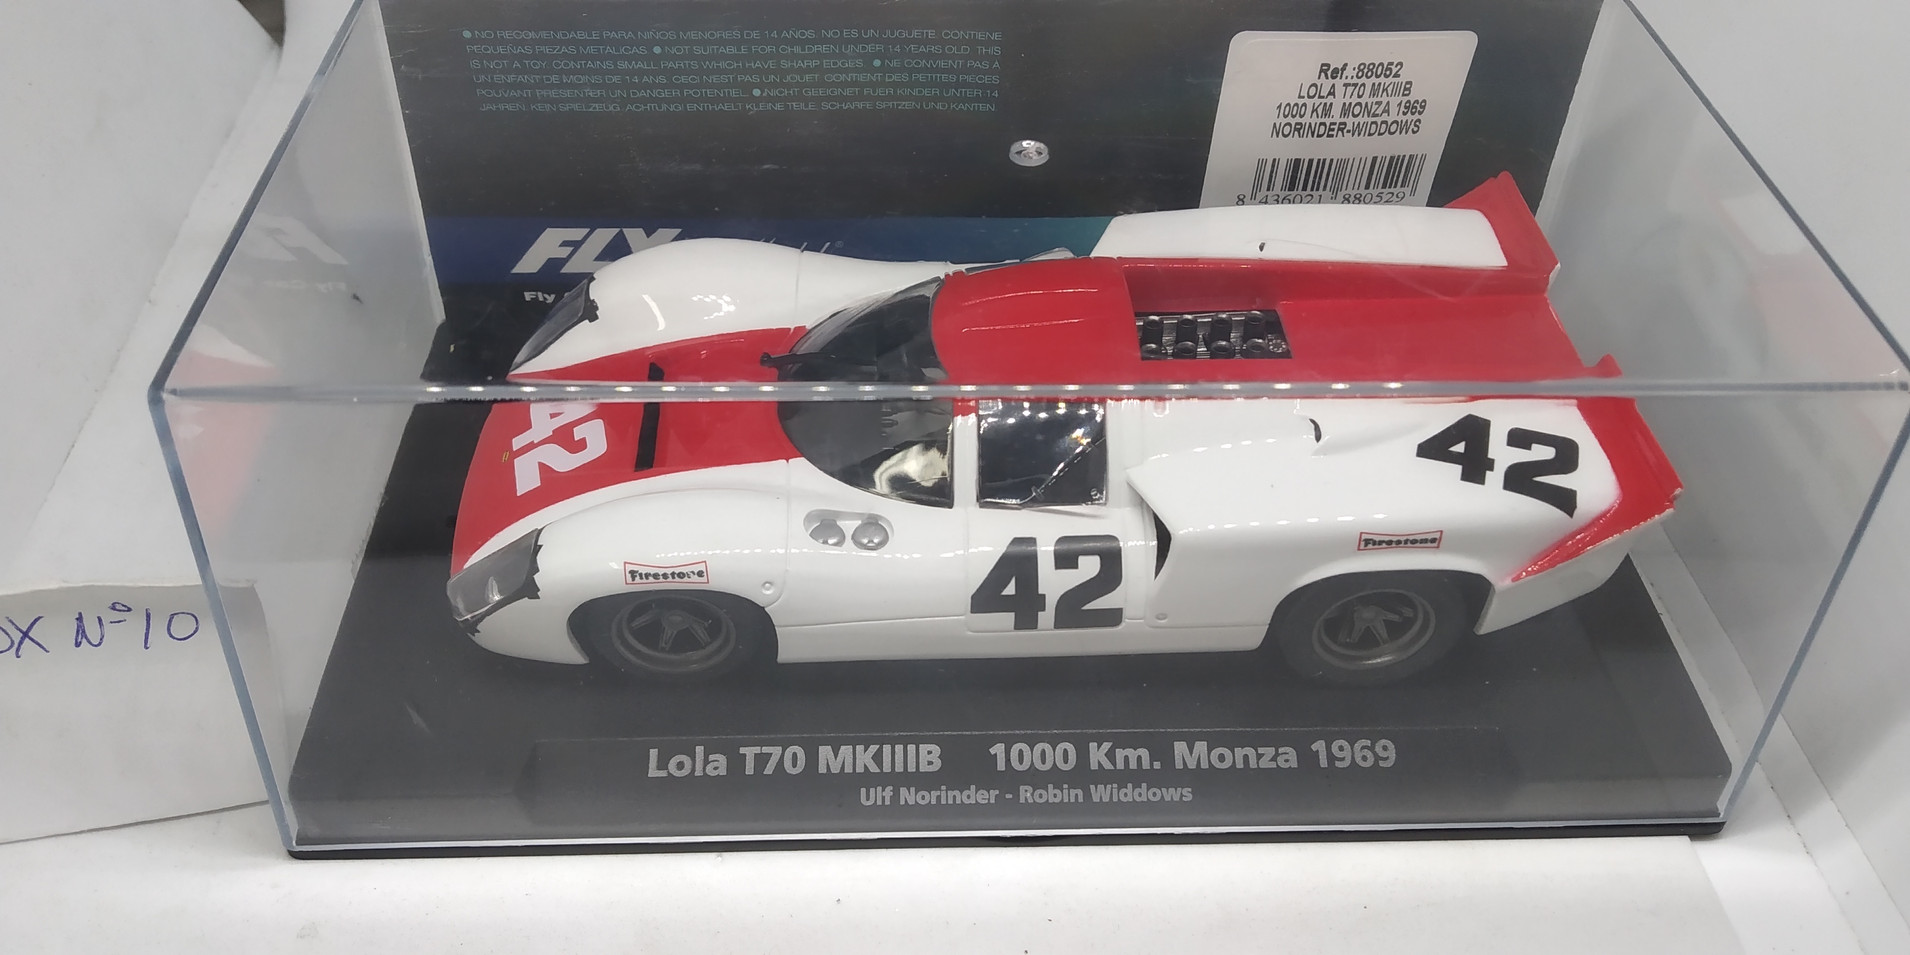 LOLA T70 MKIIIB 1000KM.MONZA 1969, REF.88052 FLY CAR MODEL